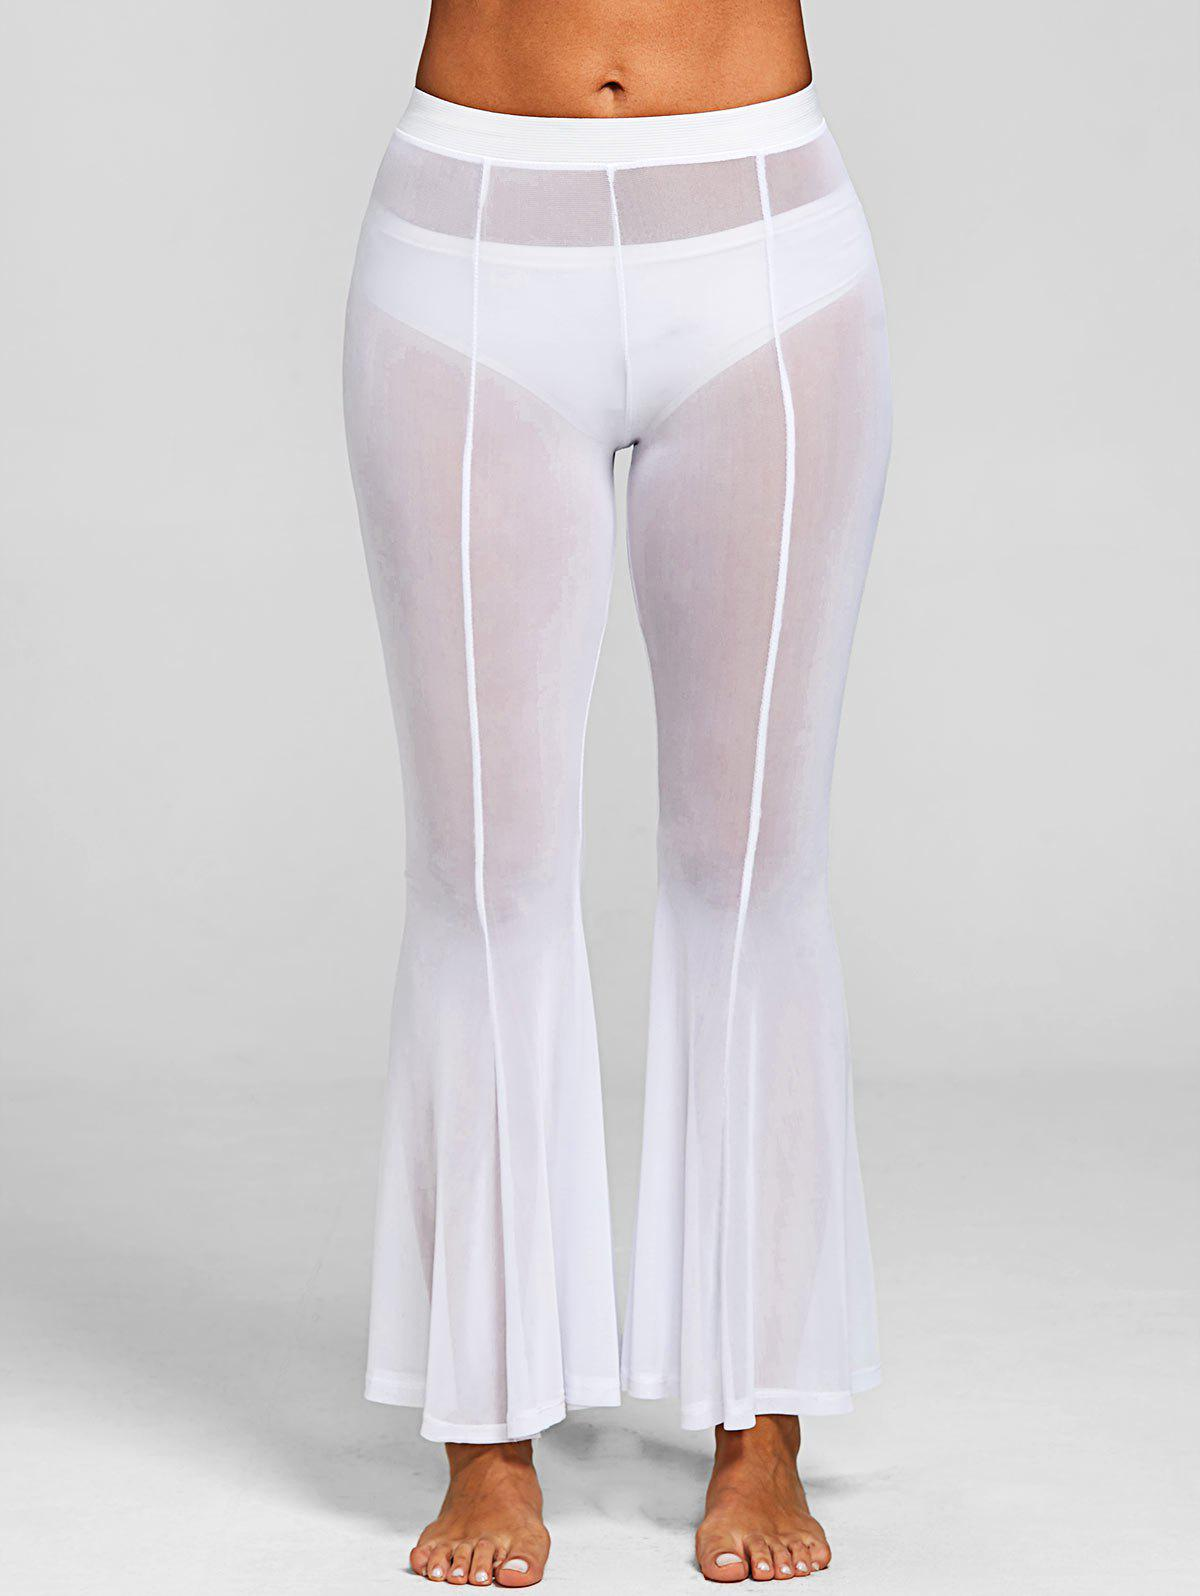 See Through Long Cover-up Pants - WHITE M